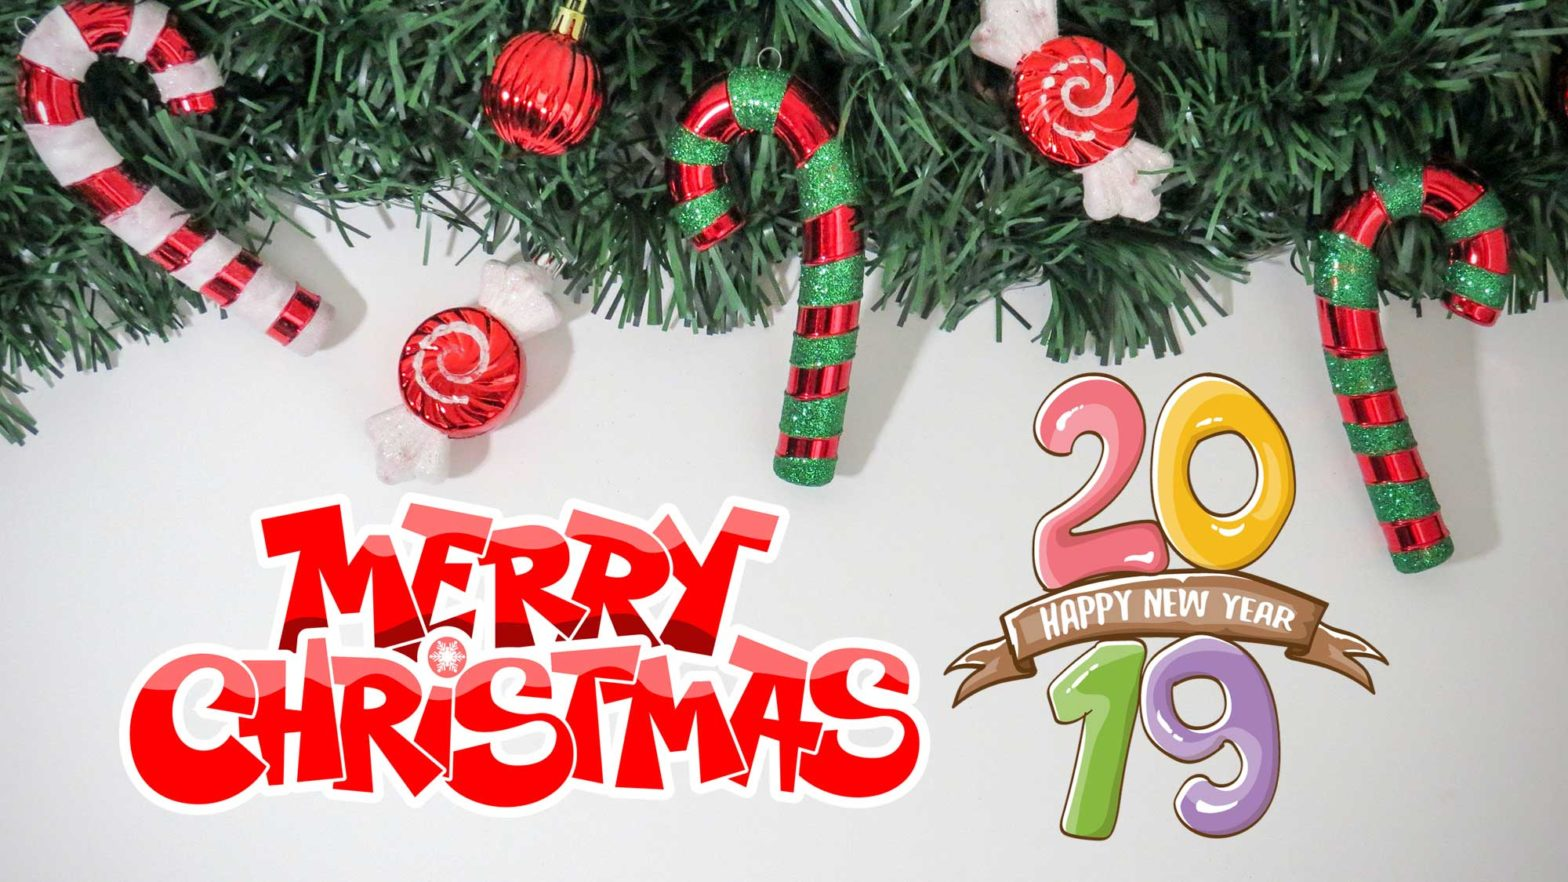 2019 Merry Christmas and a Happy New Year